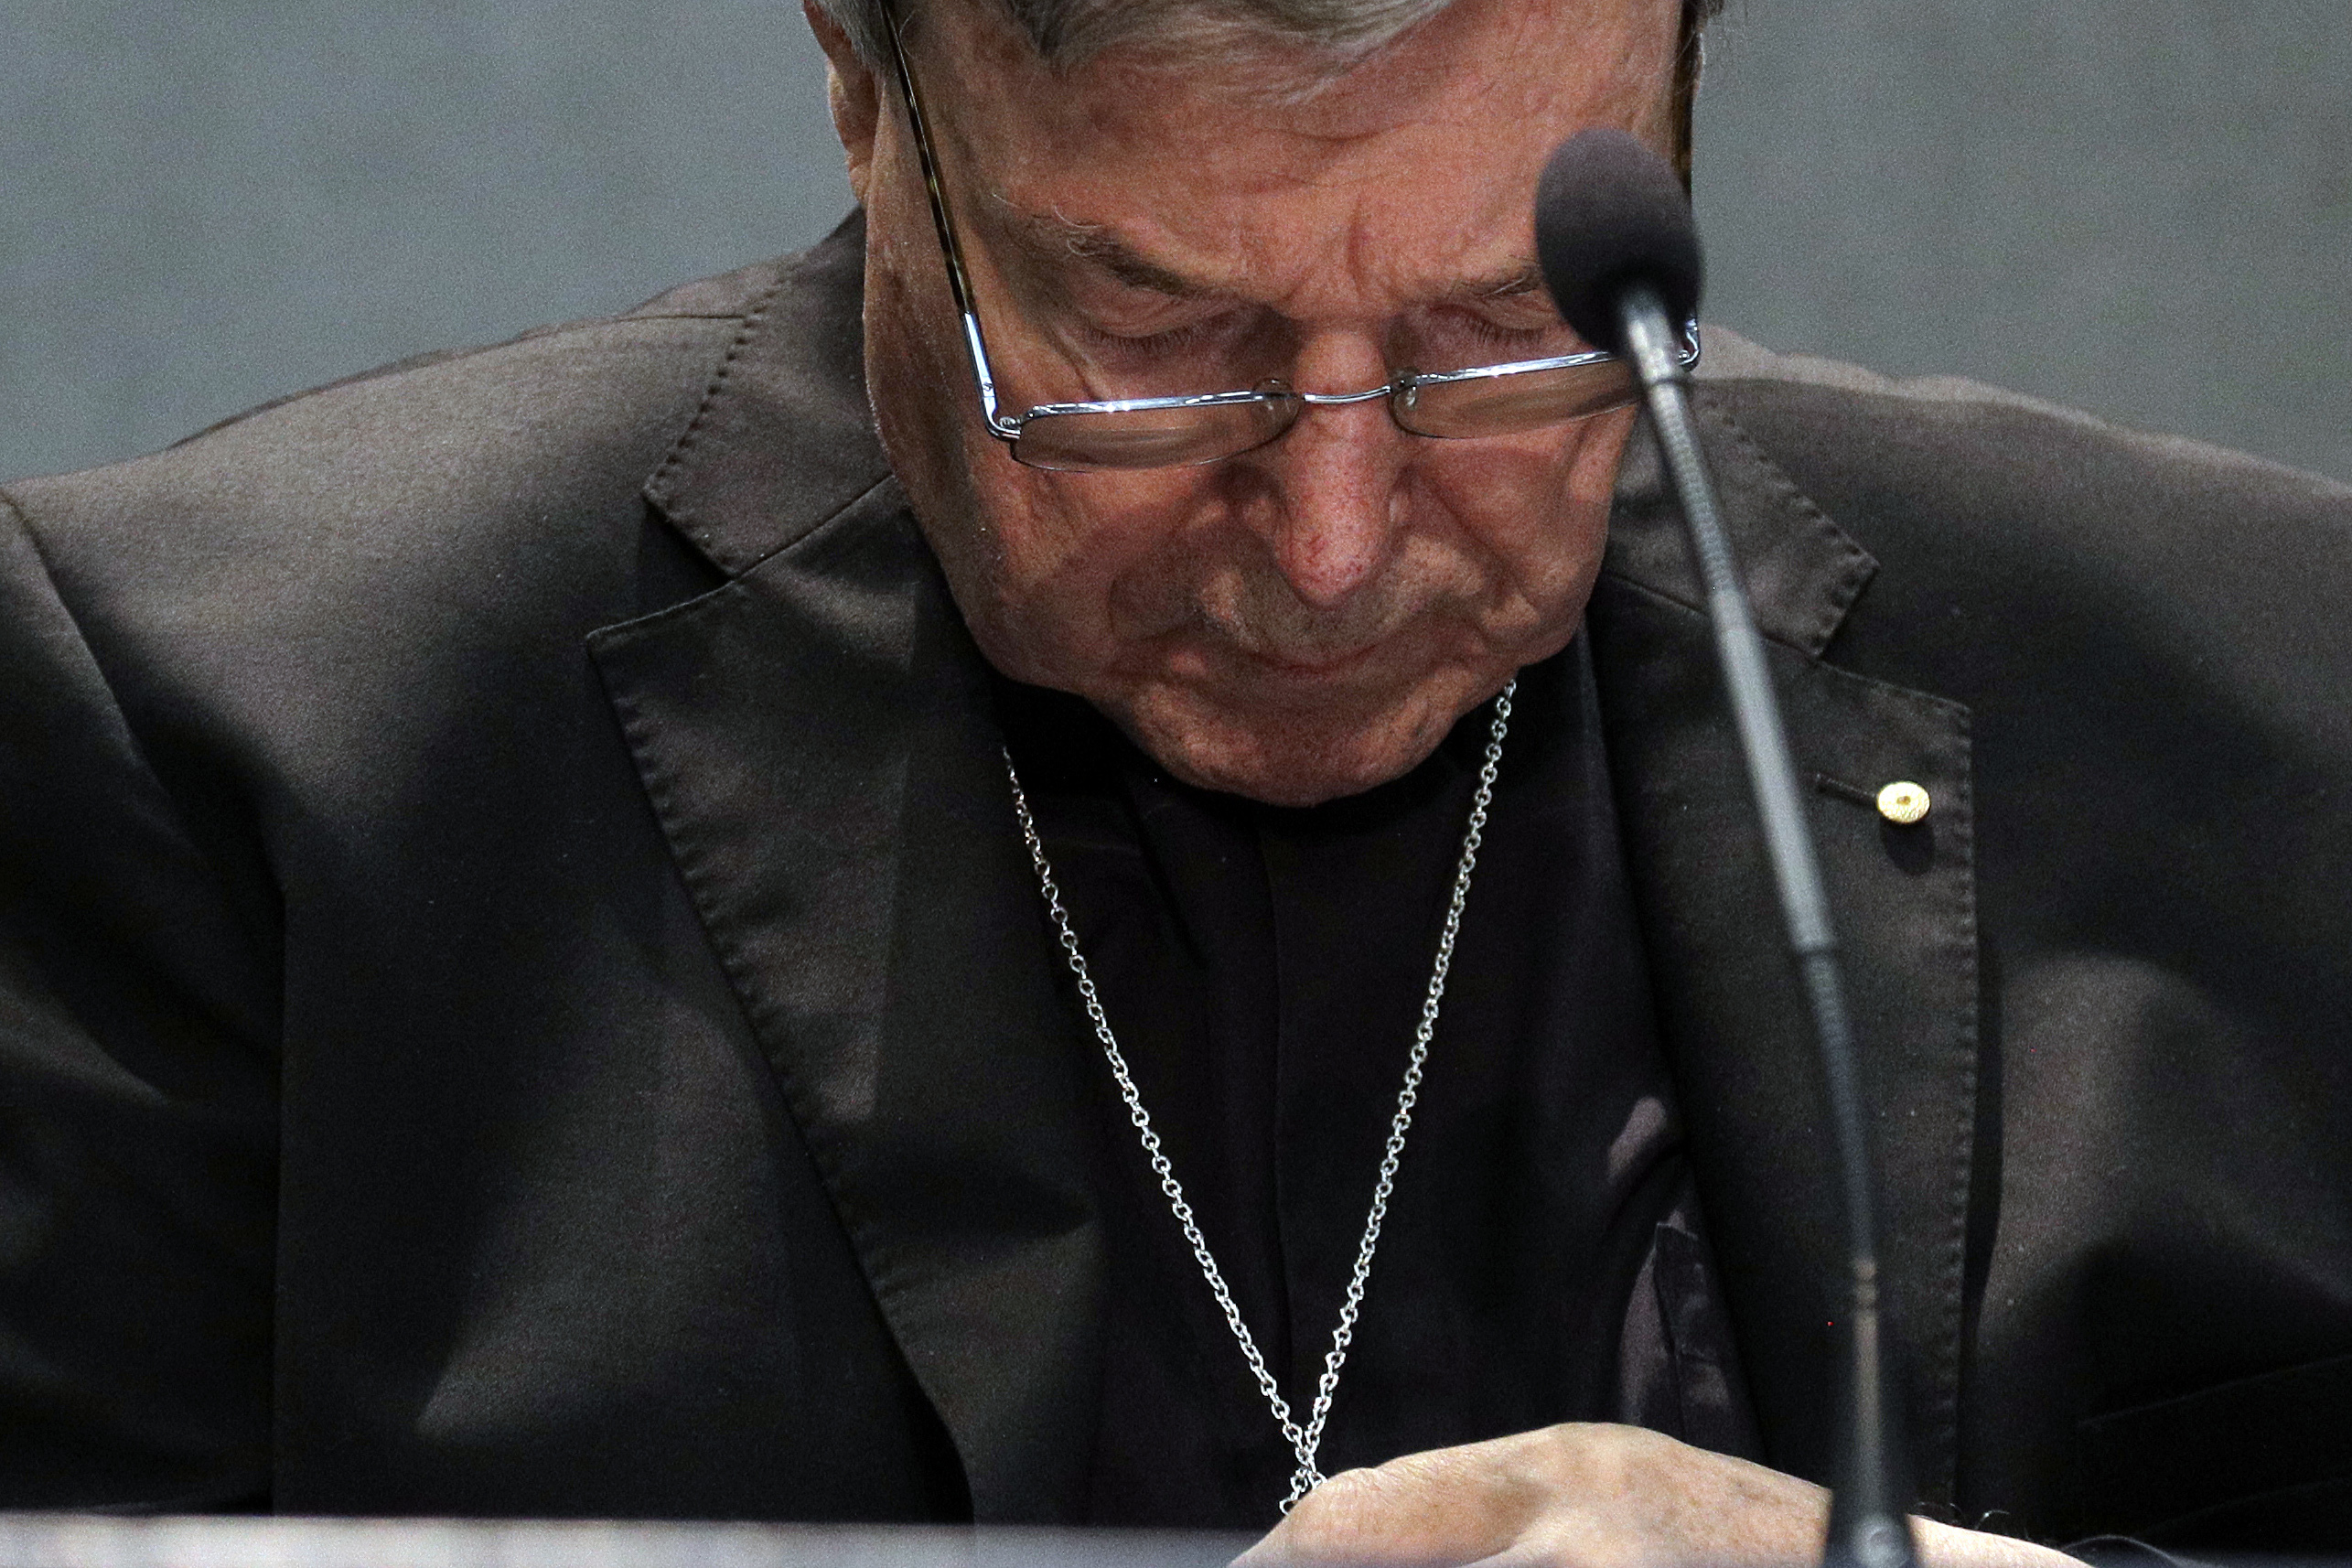 Cardinal George Pell meets the media, at the Vatican, Thursday, June 29, 2017.